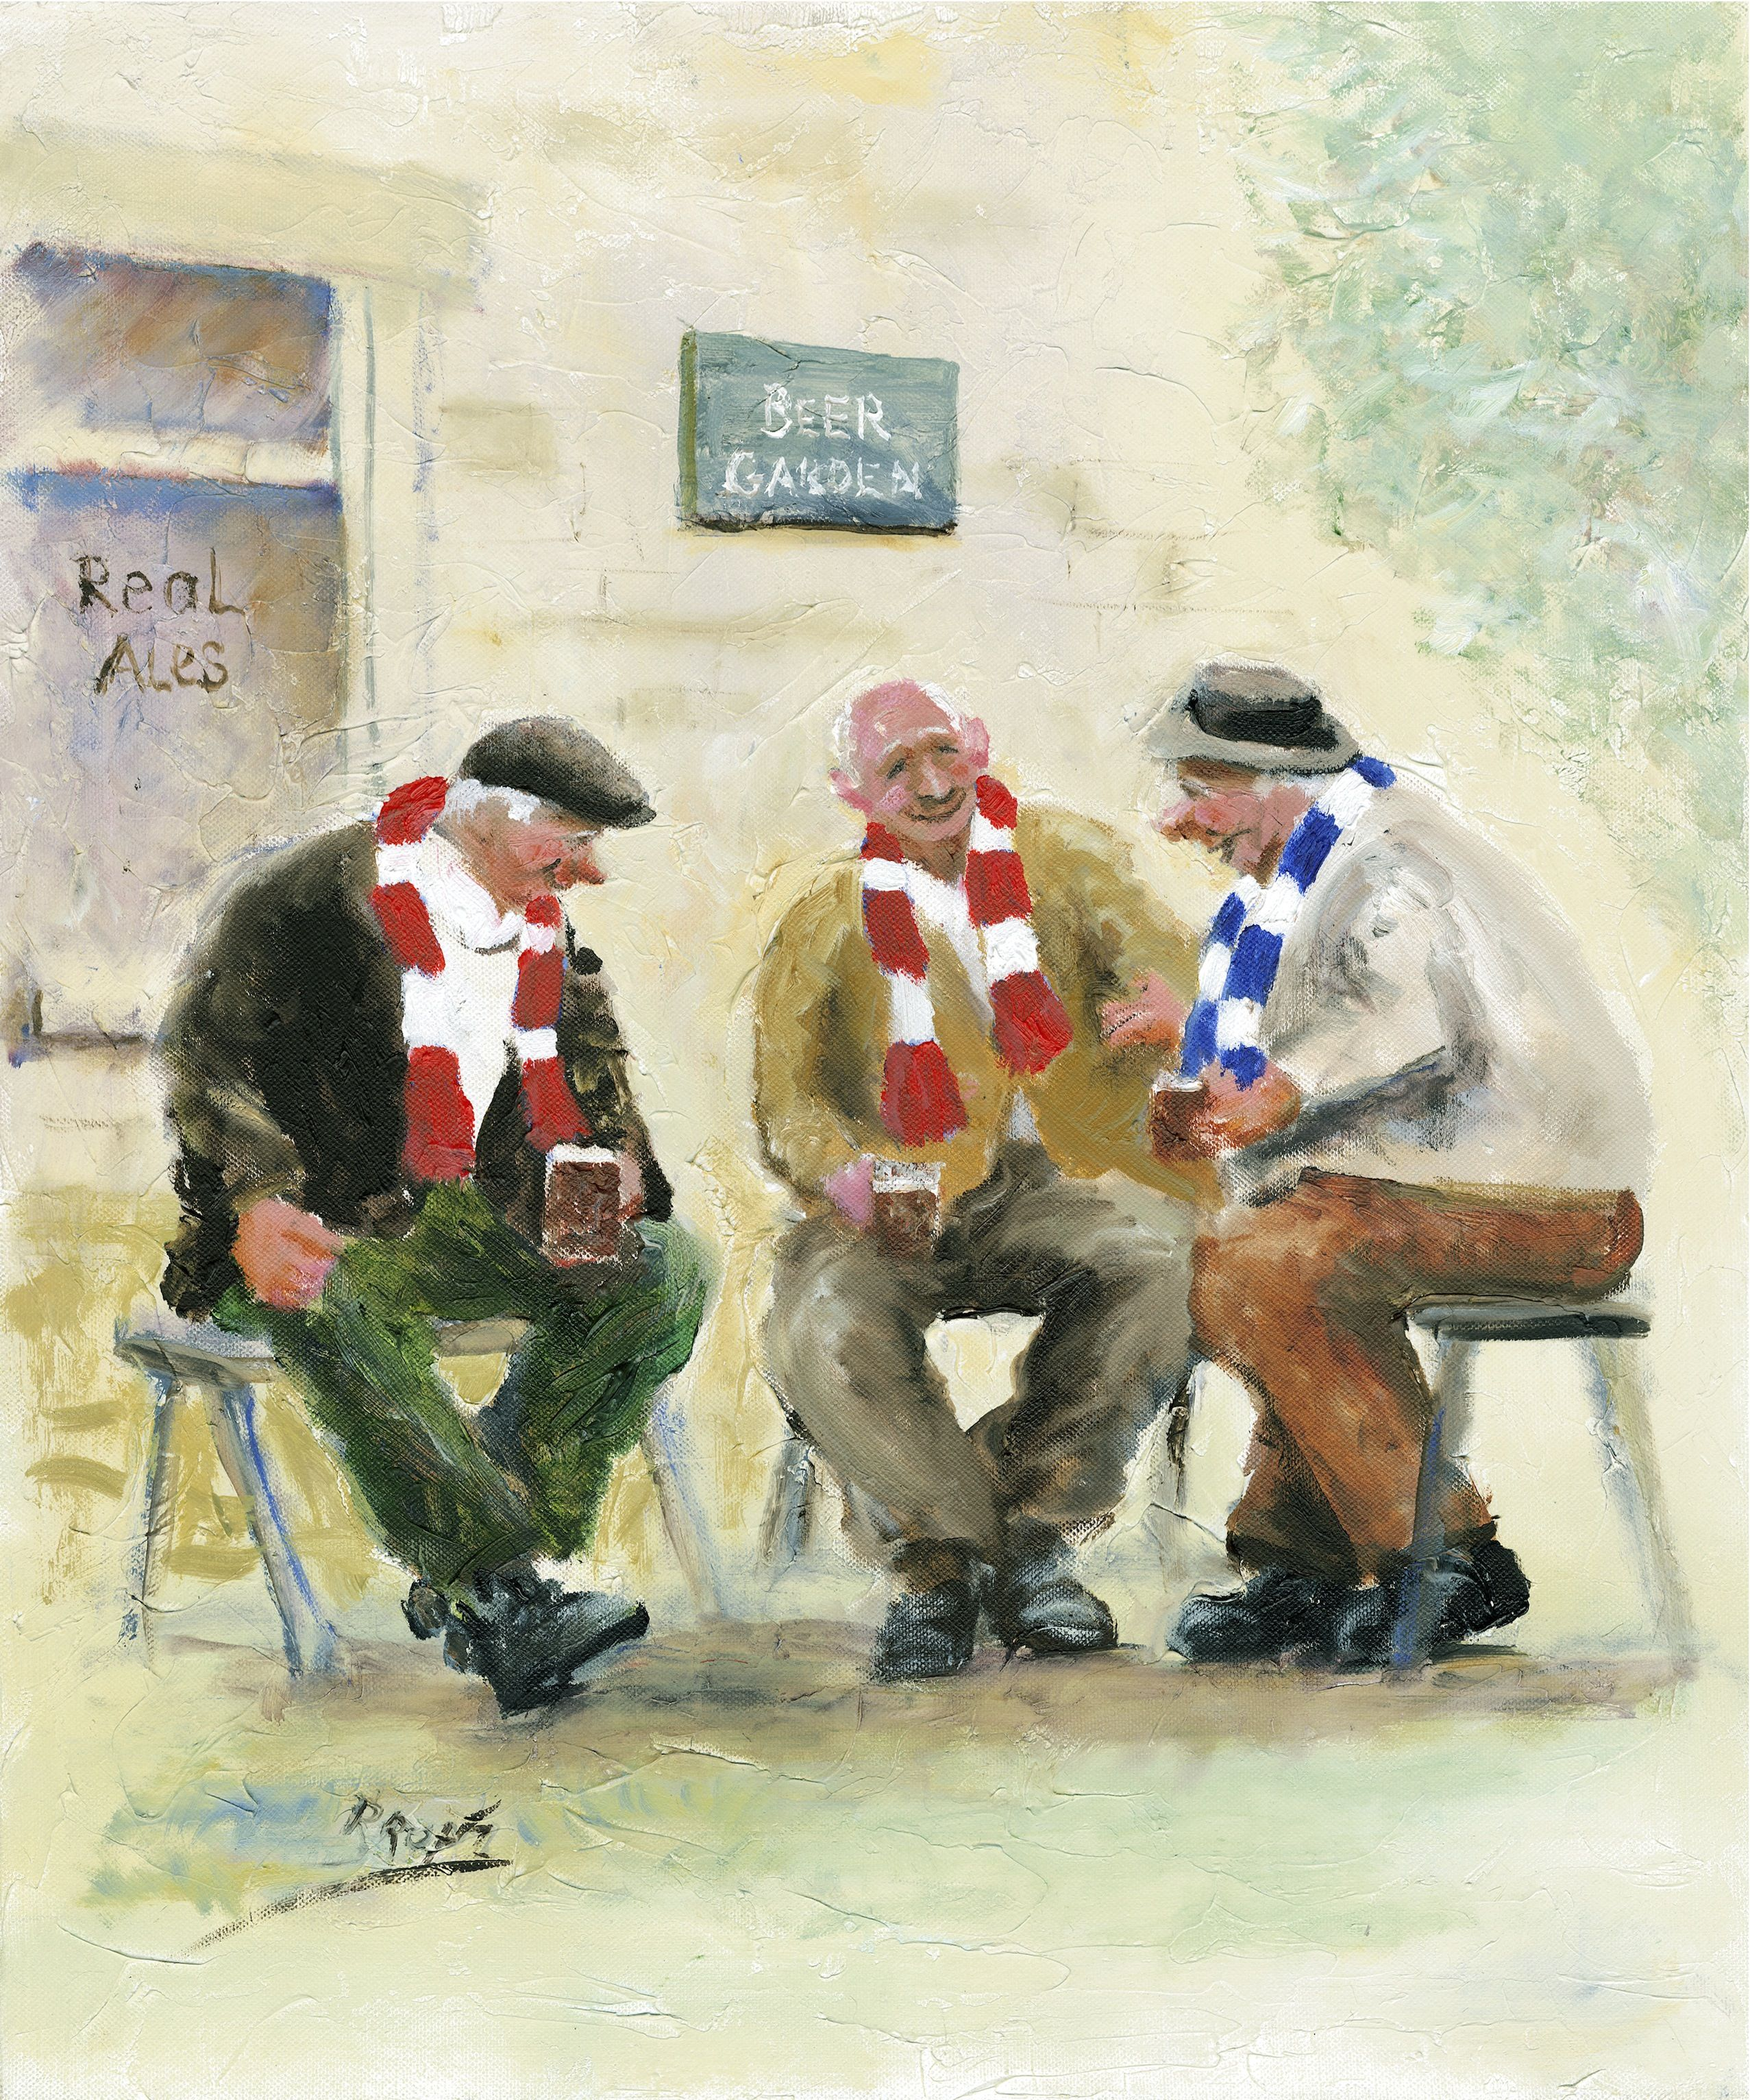 'In The Beer Garden' Prints Des Brophy Paintings